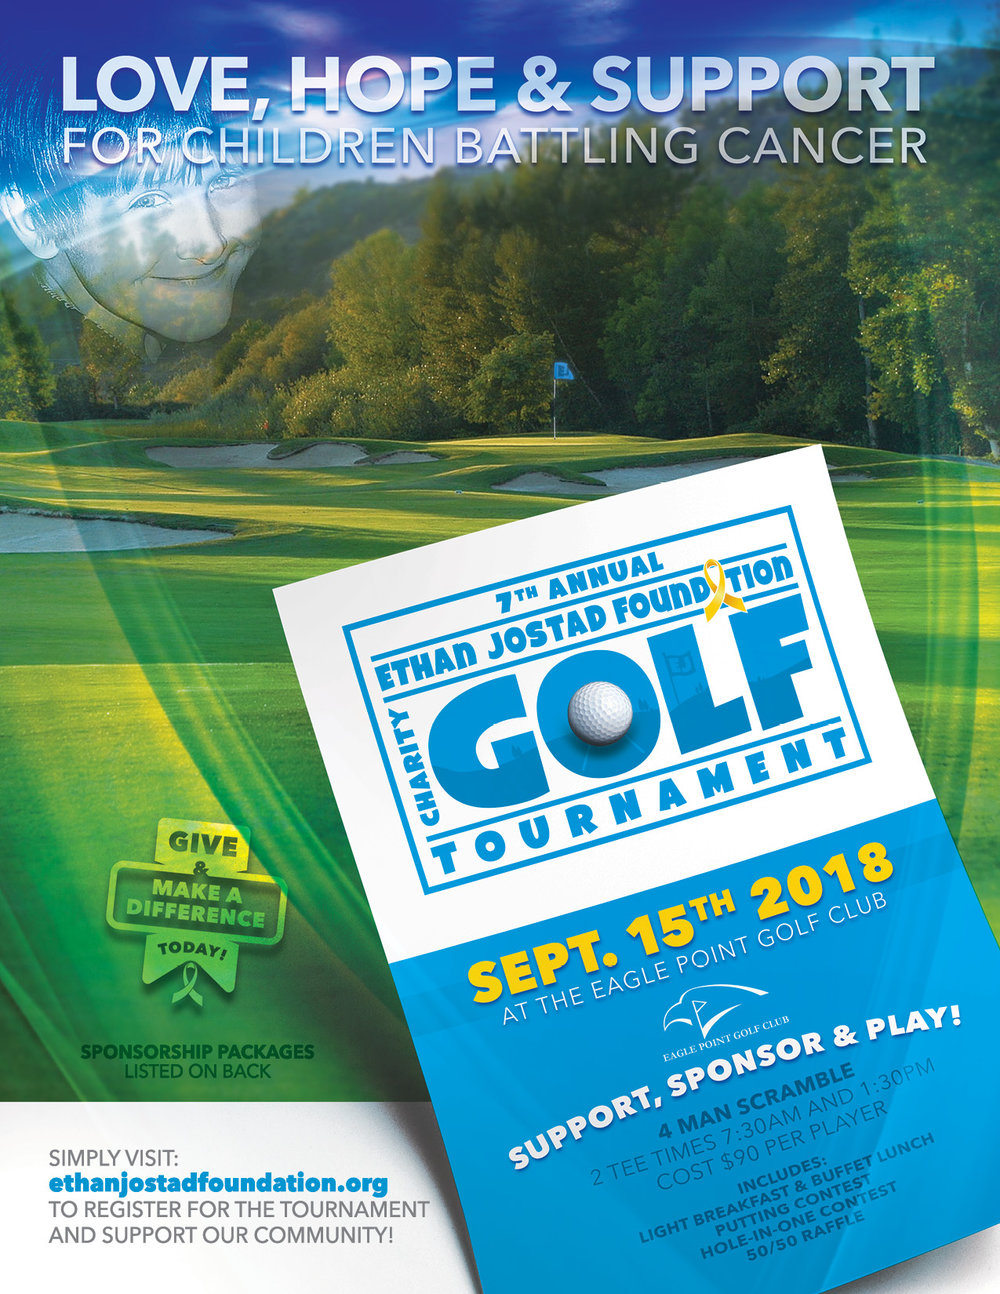 EJF-2018-GOLF-EVENT-FLYER-FINAL2.jpg